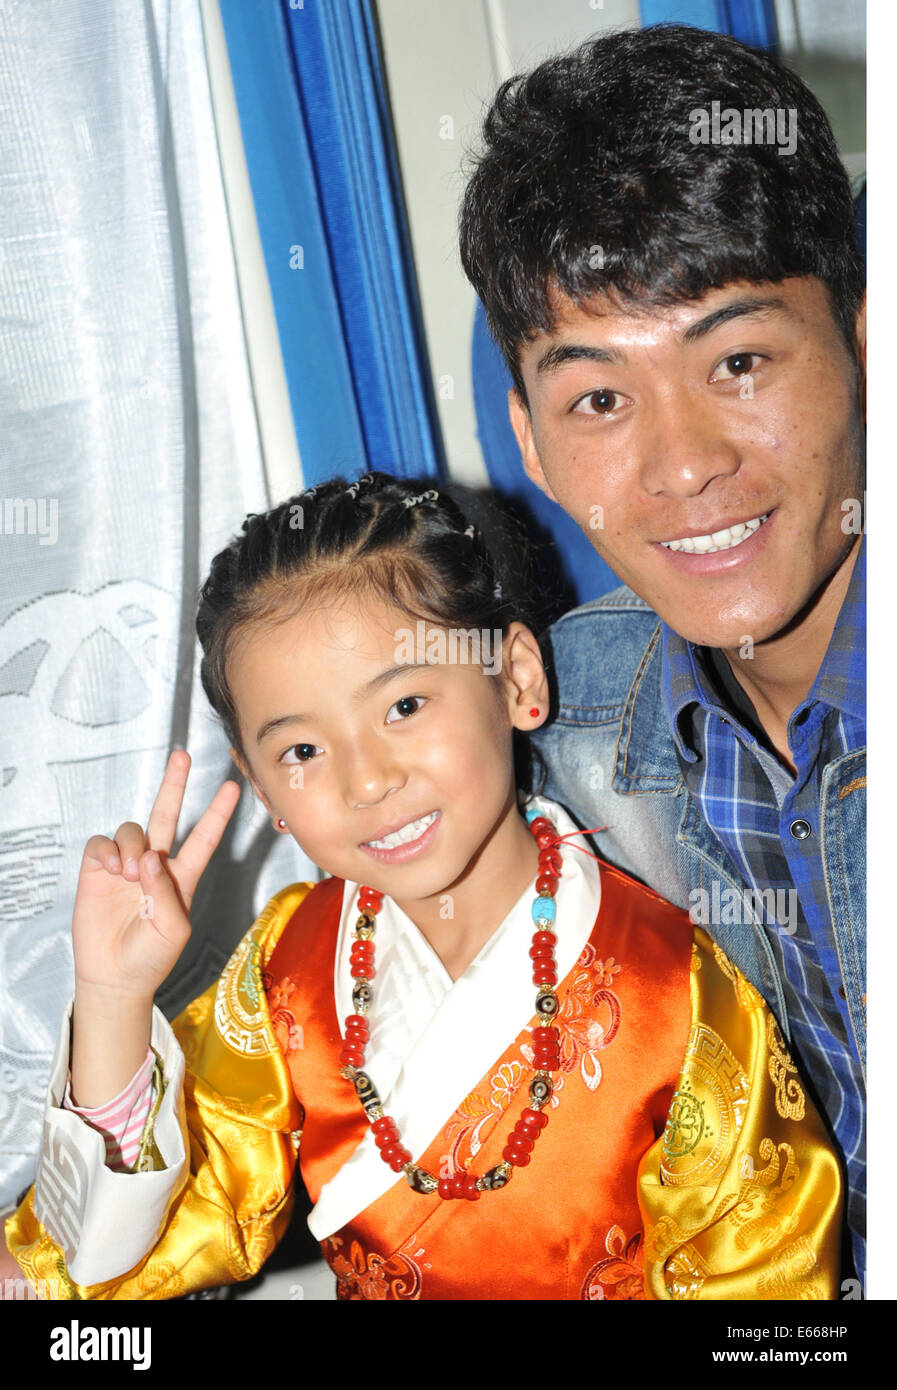 Lhasa, China's Tibet Autonomous Region. 16th Aug, 2014. Nine-year-old Suoyang (L) and her brother pose for photo - Stock Image